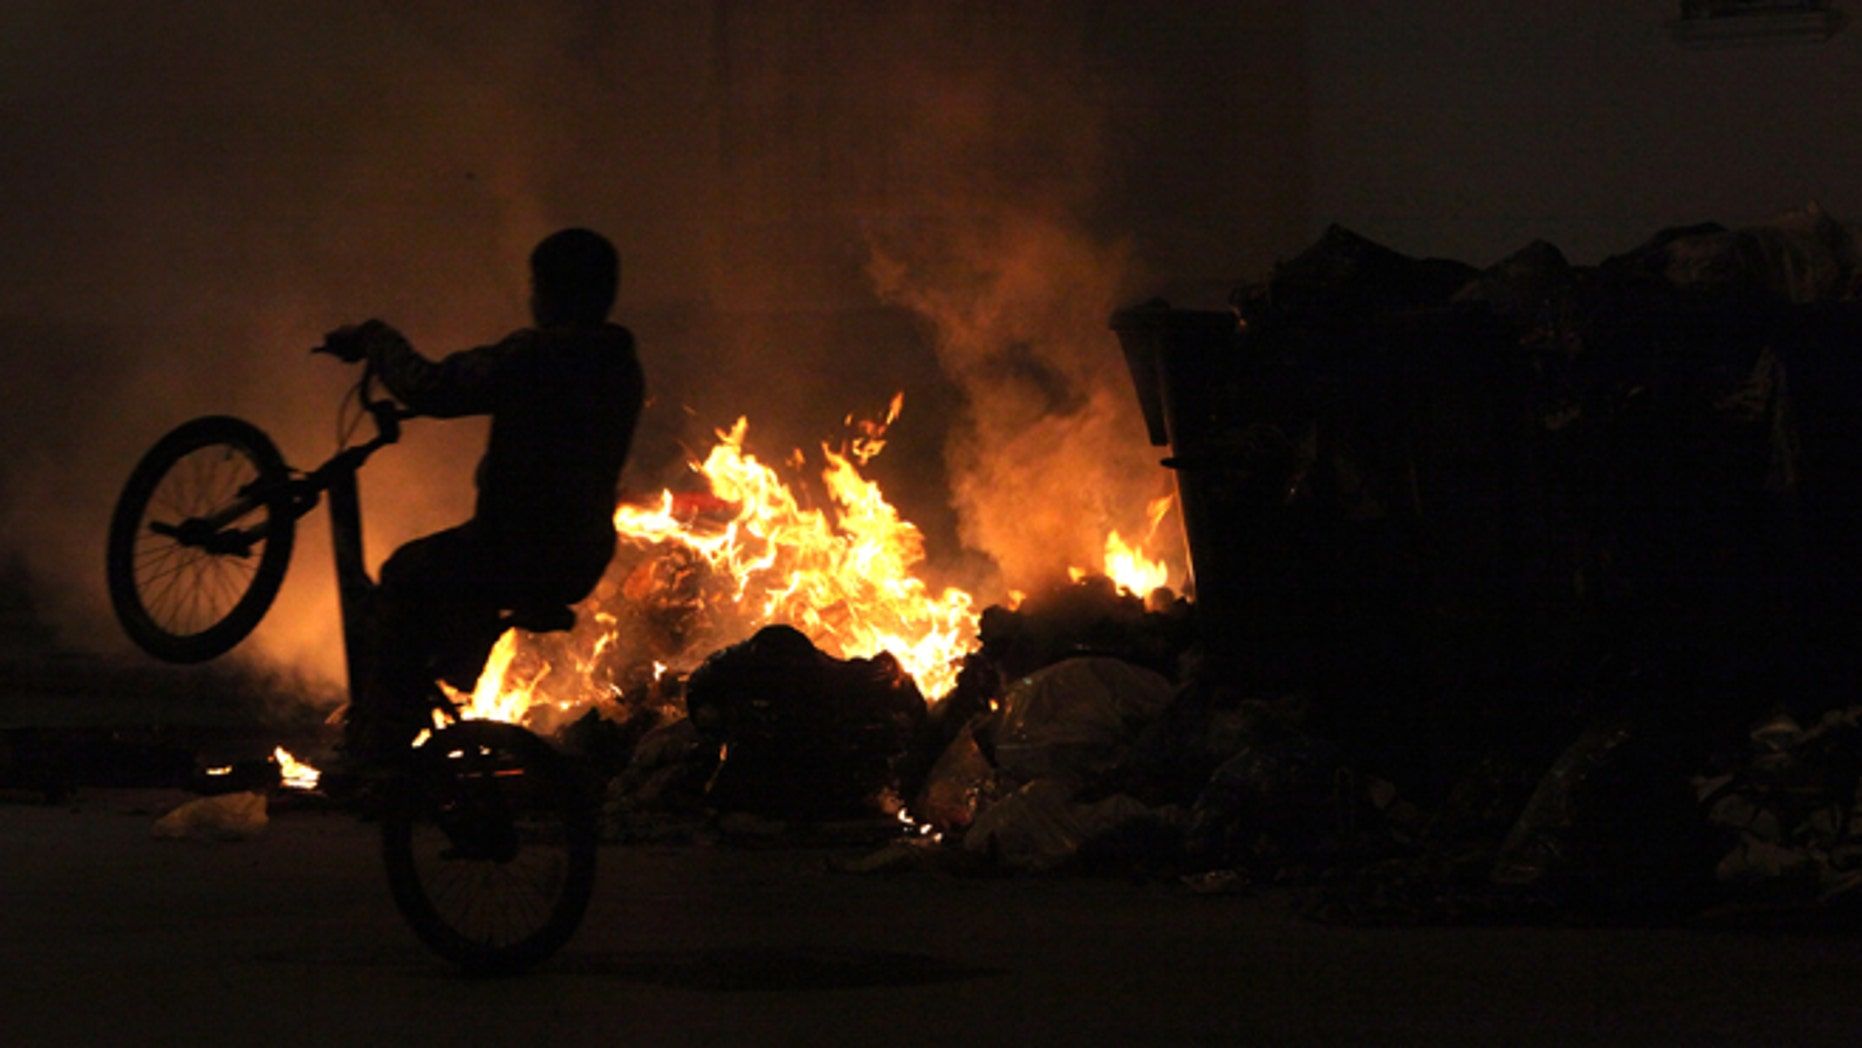 A boy rides his bicycle next to burning garbage piled up in the middle of the street in Jerez de la Frontera, Cadiz province in Andalucia, southern Spain Wednesday, Nov. 21, 2012. A garbage strike has been ongoing now for nineteen days and has resulted in more than 3,000 tons of garbage piled up on the streets and the burning of rubbish containers by local residents.  (AP Photo/Javier Fergo)